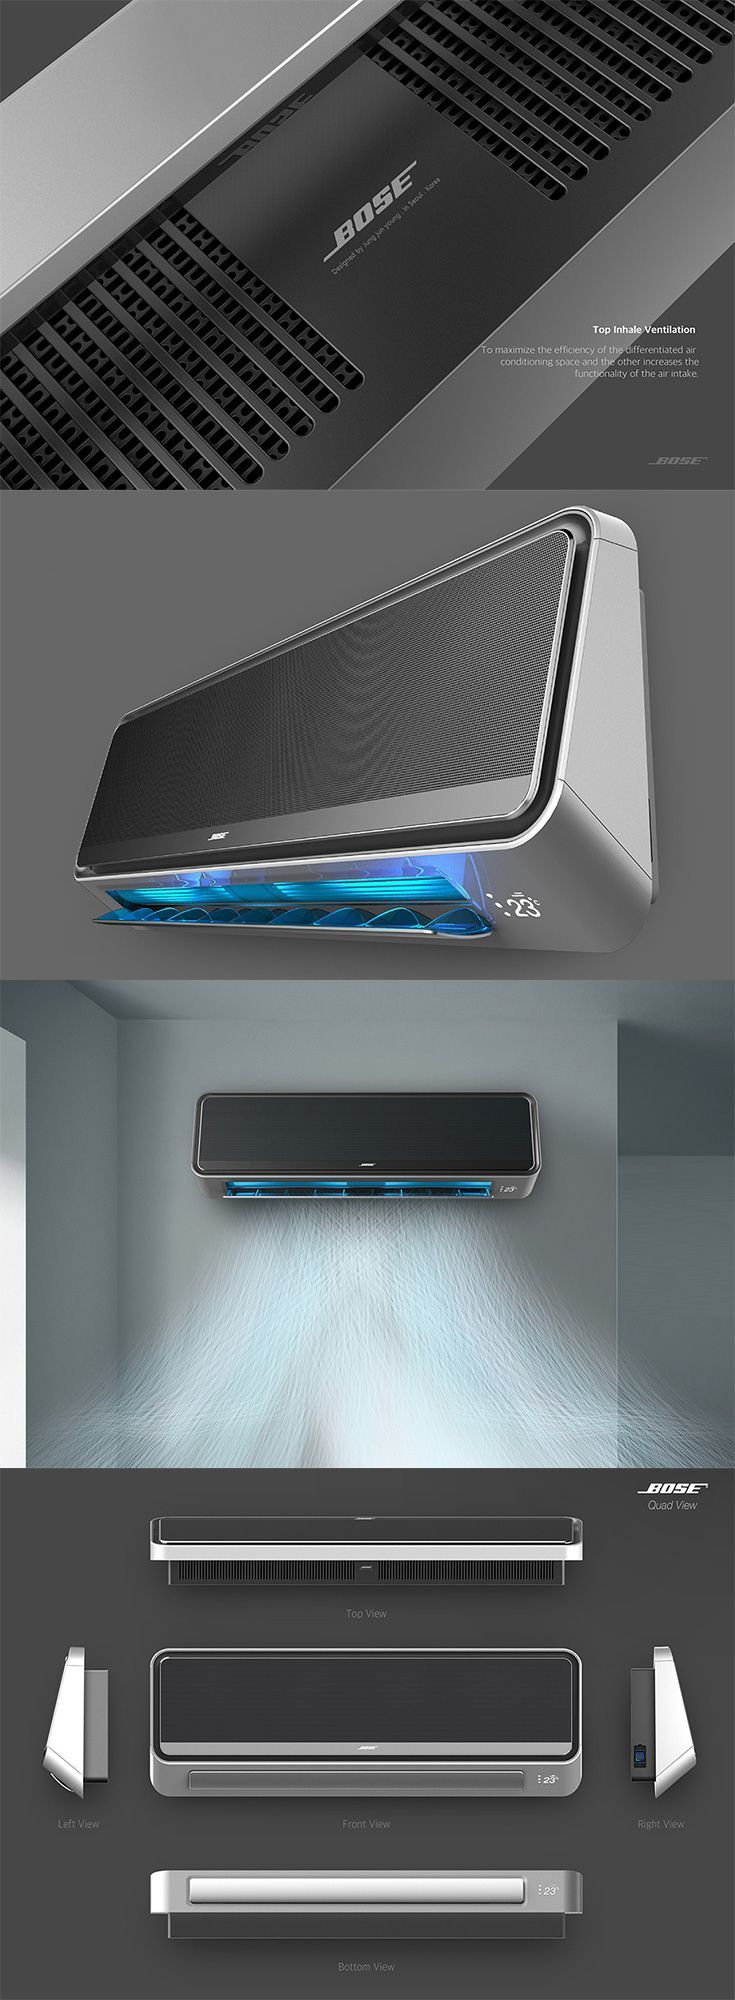 This breezy 'Bose' isn't your average speaker, instead of sweet tunes, it blasts ice cold air cause it is actually an exploration into what an AC unit from audio equipment maker Bose might look like... READ MORE at Yanko Design!